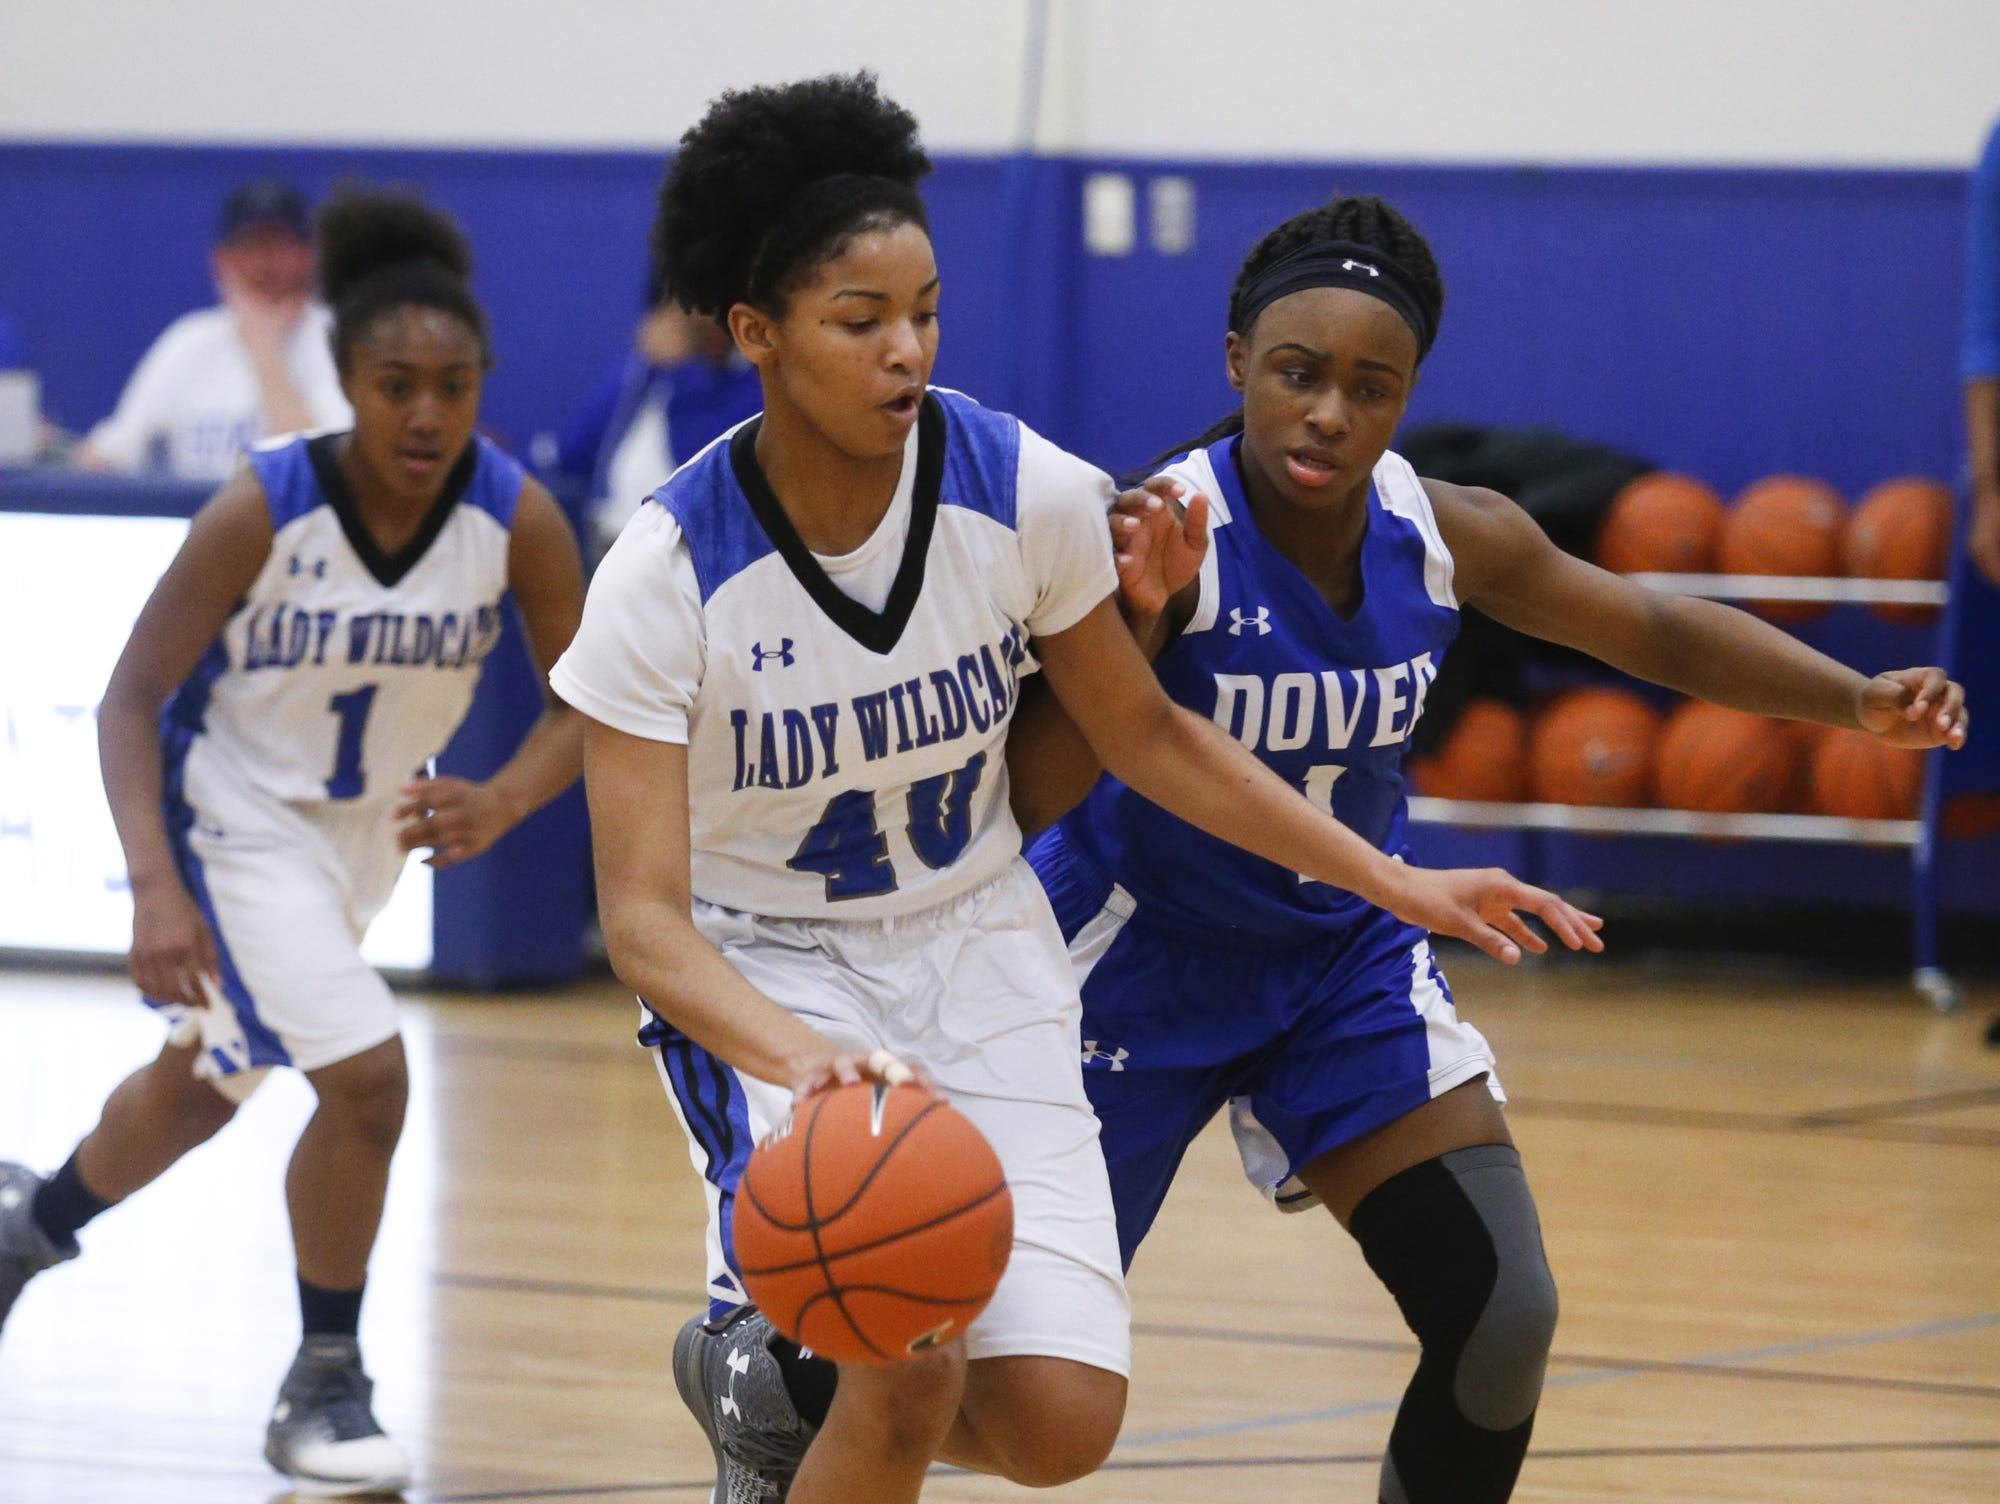 Howard's Ronnasia Blatch-Huggins (40) moves for the basket against Dover's Jacarra Jackson in Howard's opening round win in the DIAA state high school tournament Tuesday at Howard.